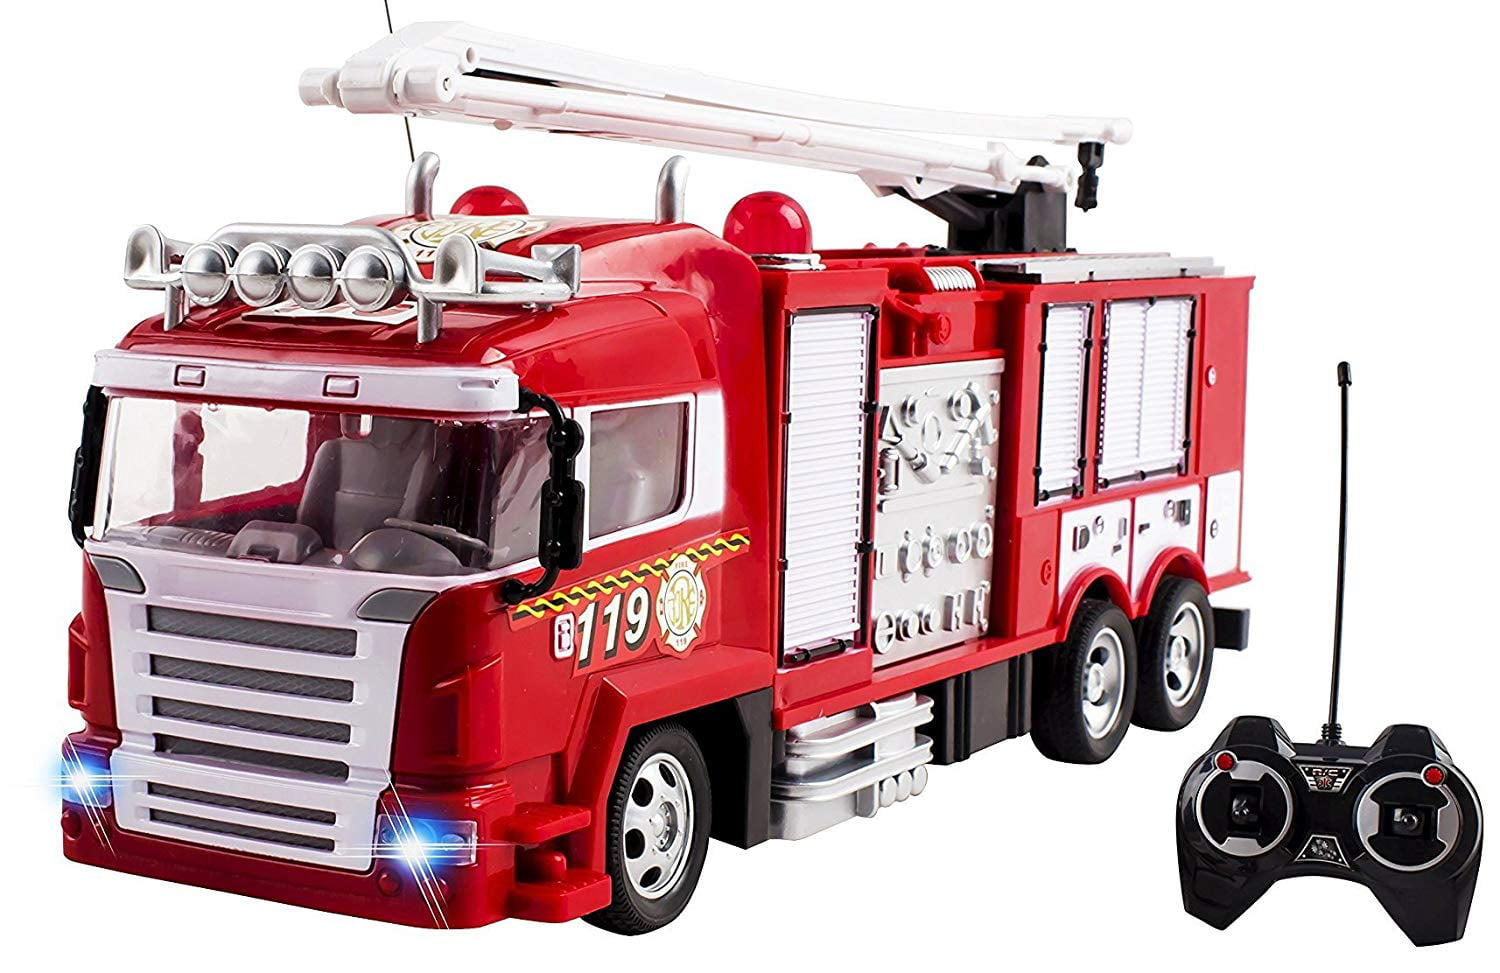 RC Fire Truck Rescue Engine Remote Control Large Kids Toy Fully Functional With Extendable Ladder Music and... by Vokodo